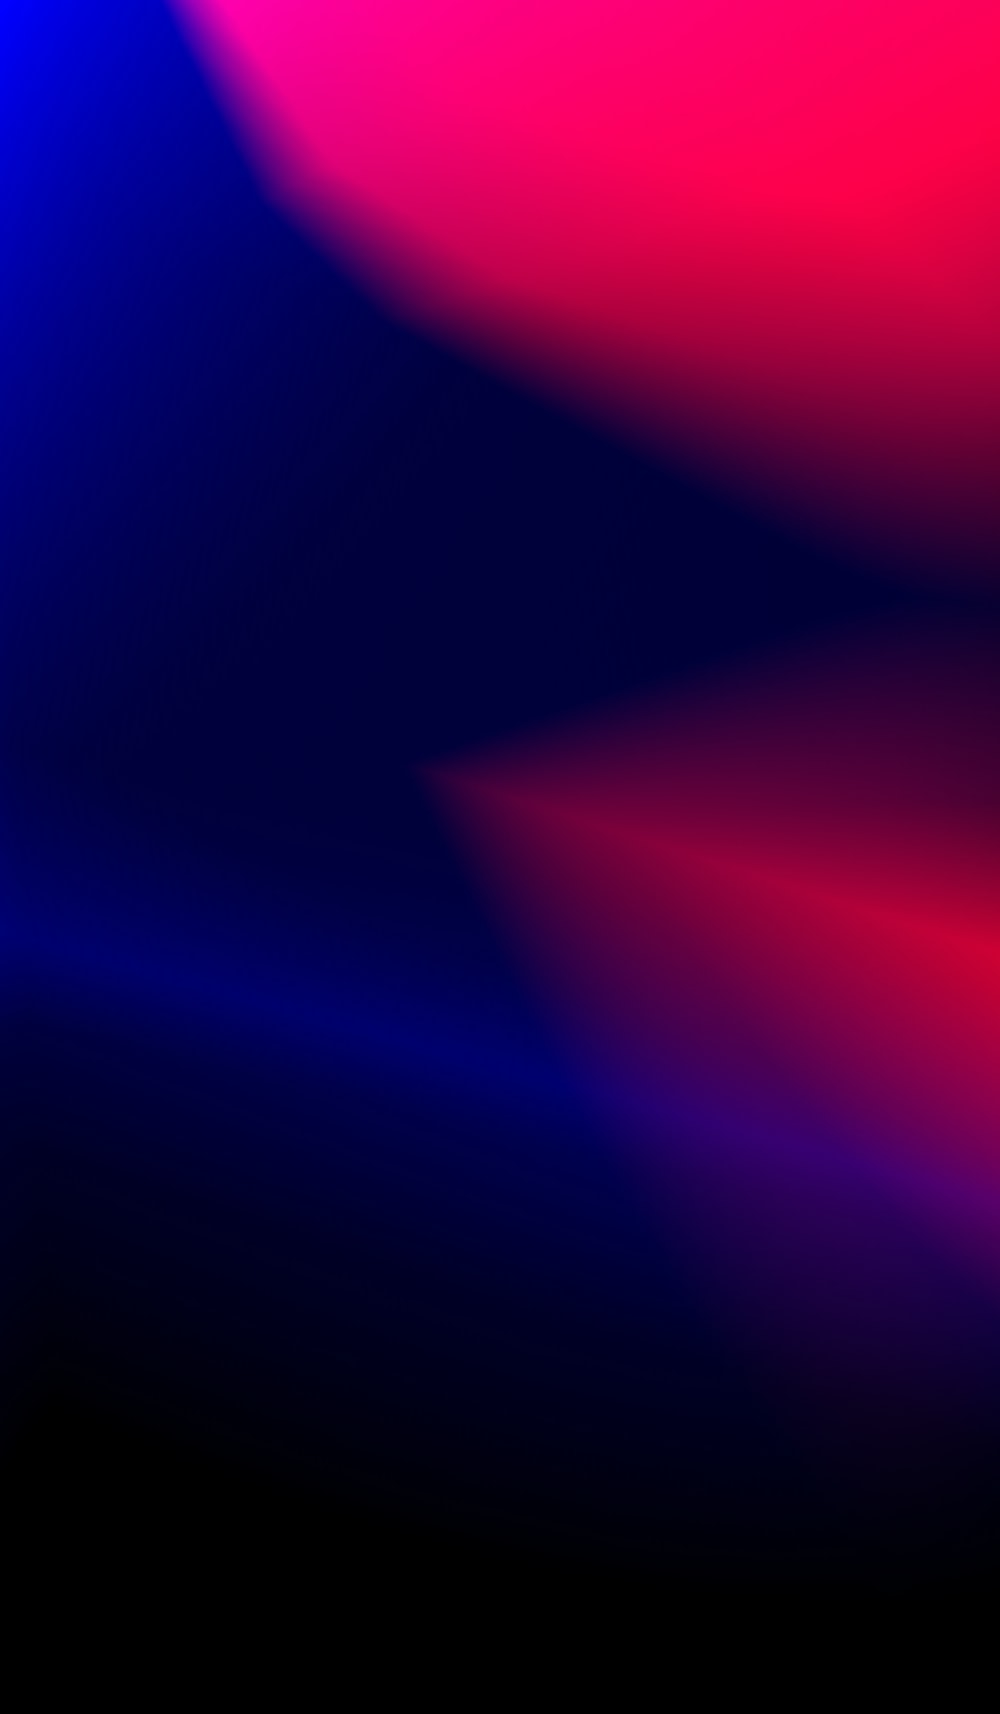 purple and blue light illustration